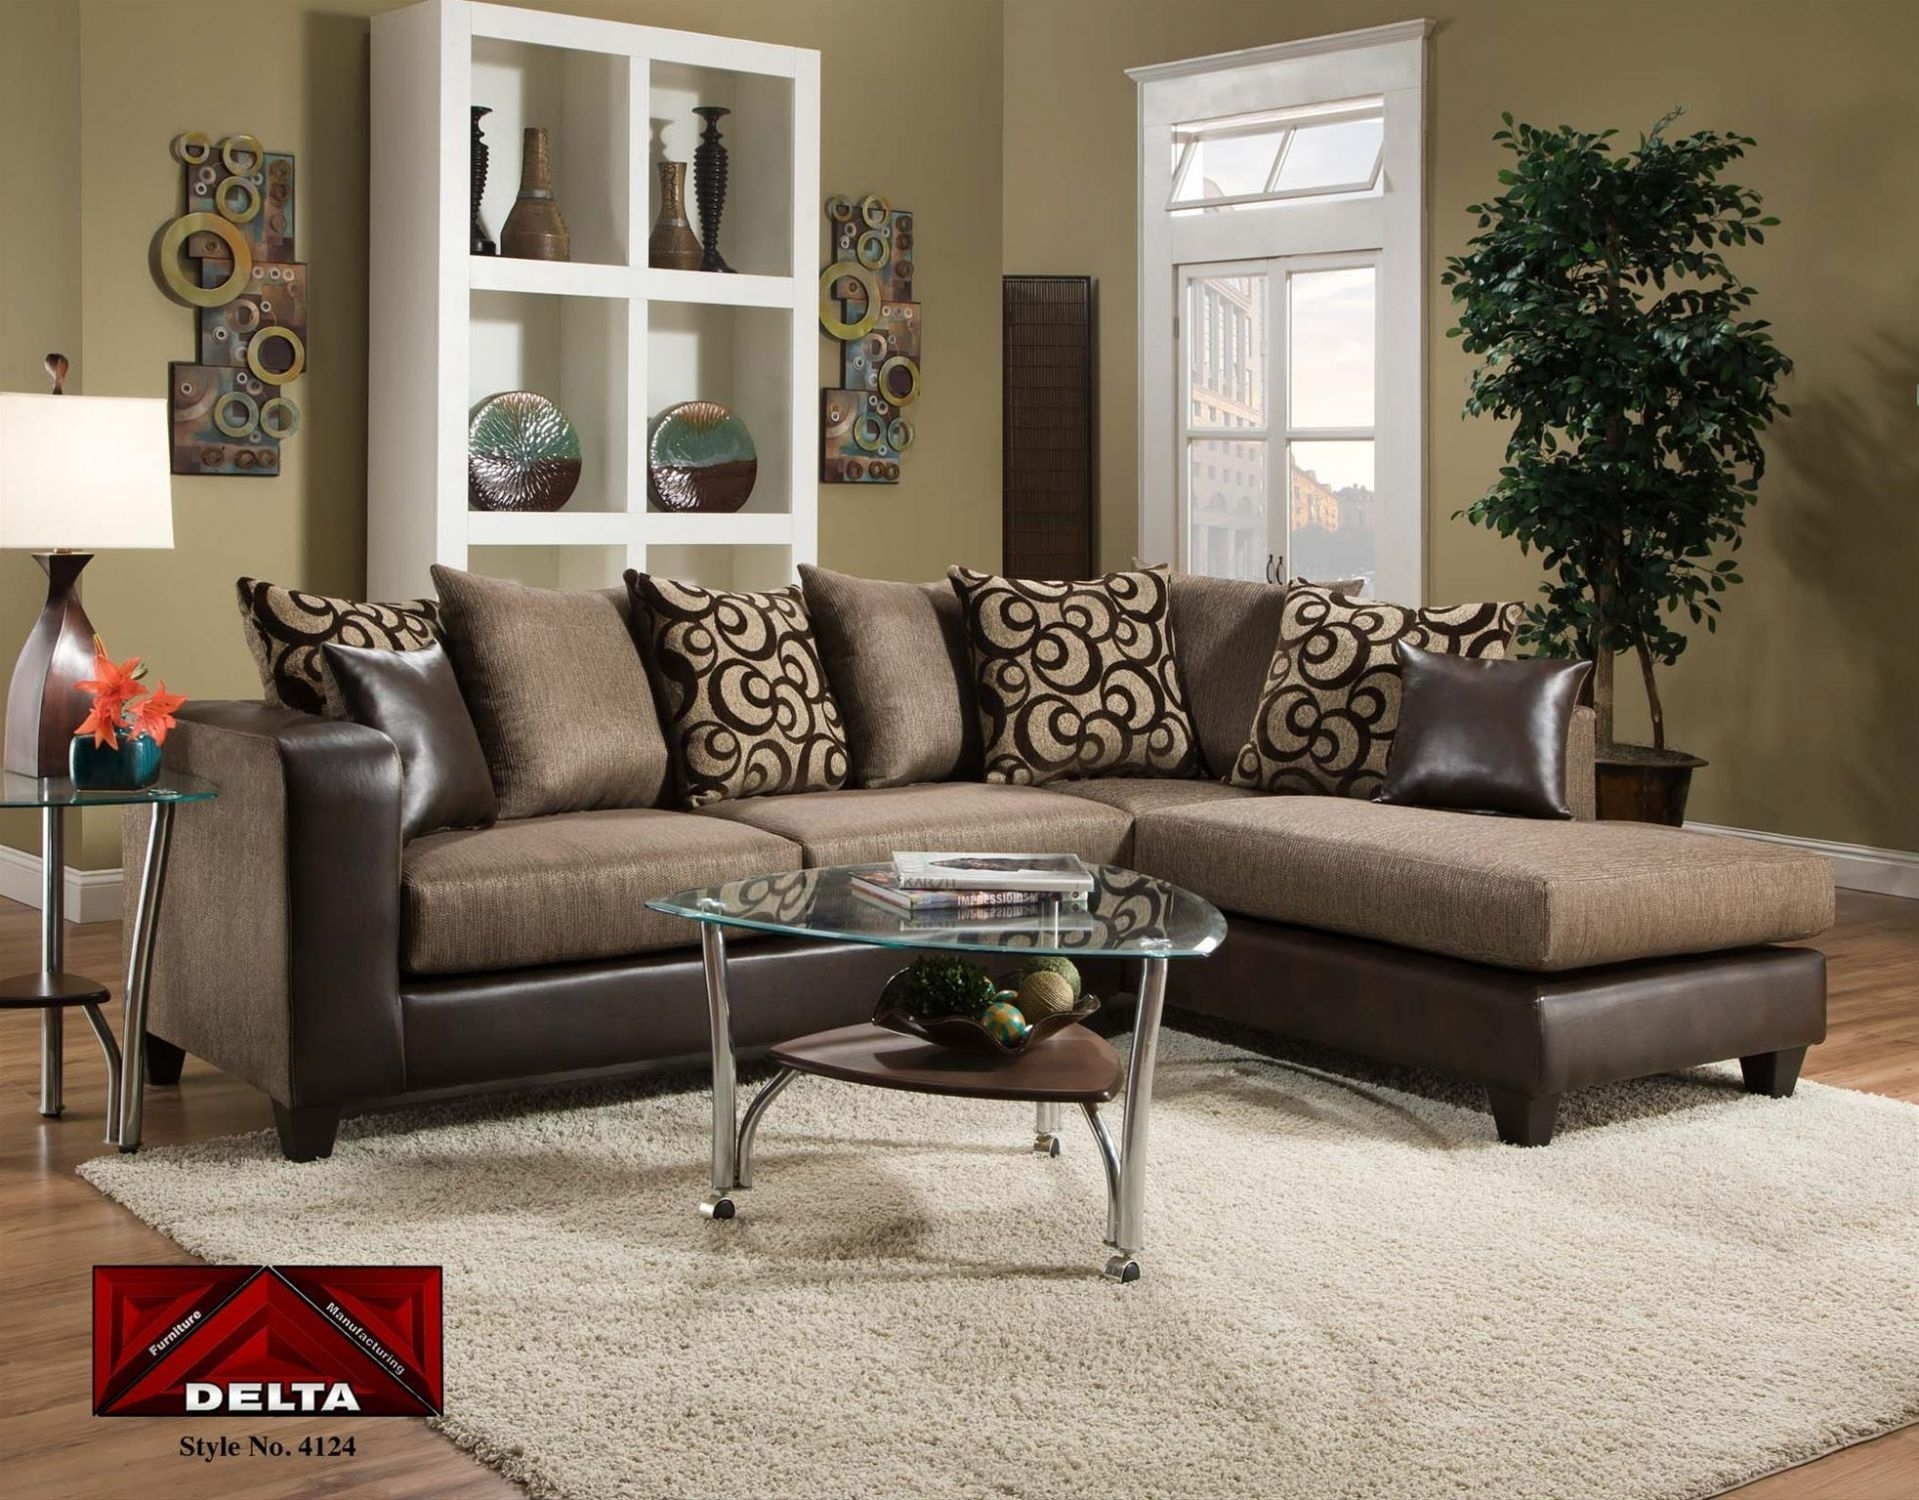 Update Your Living Room With Our Designer Chaise Sectional | $798 Throughout Joplin Mo Sectional Sofas (Image 10 of 10)